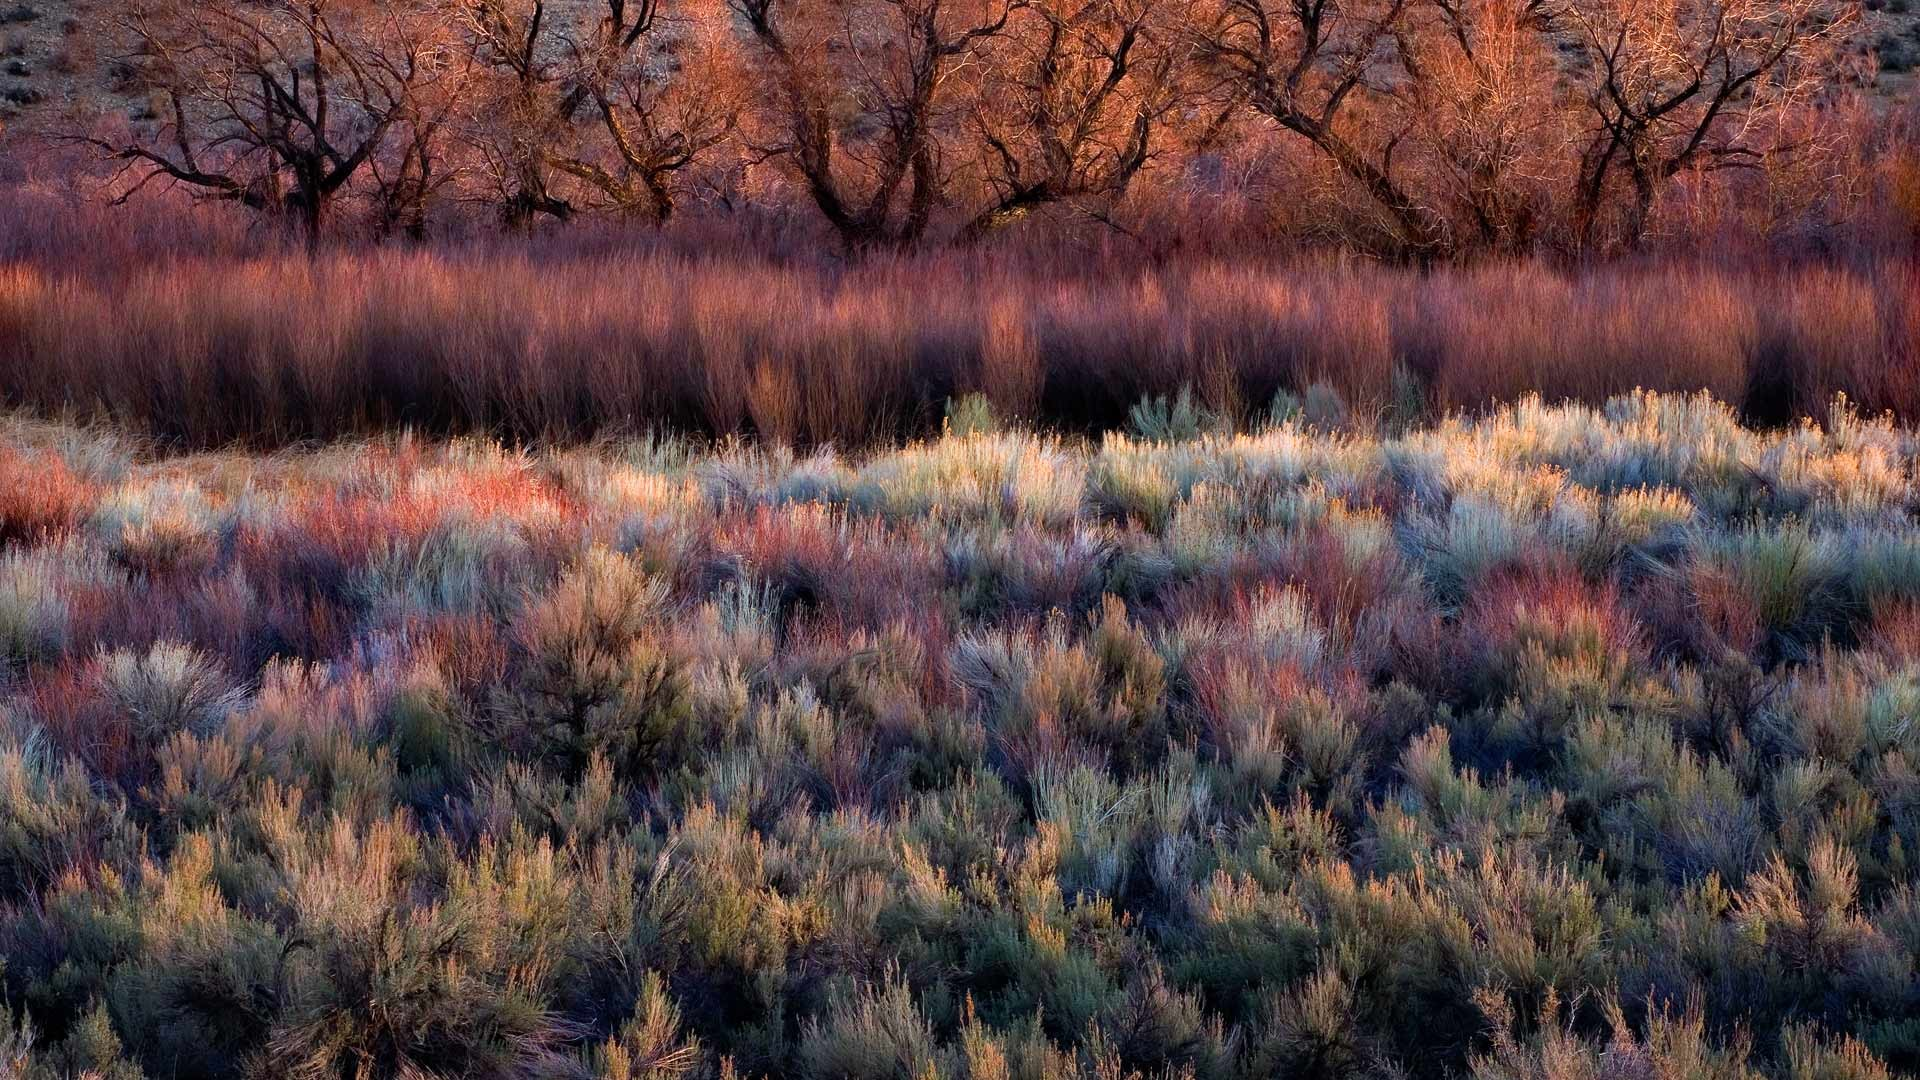 1920x1080 2014-01-10_EN-AU10309991569_Foliage-including-cottonwoods-willows-sage-